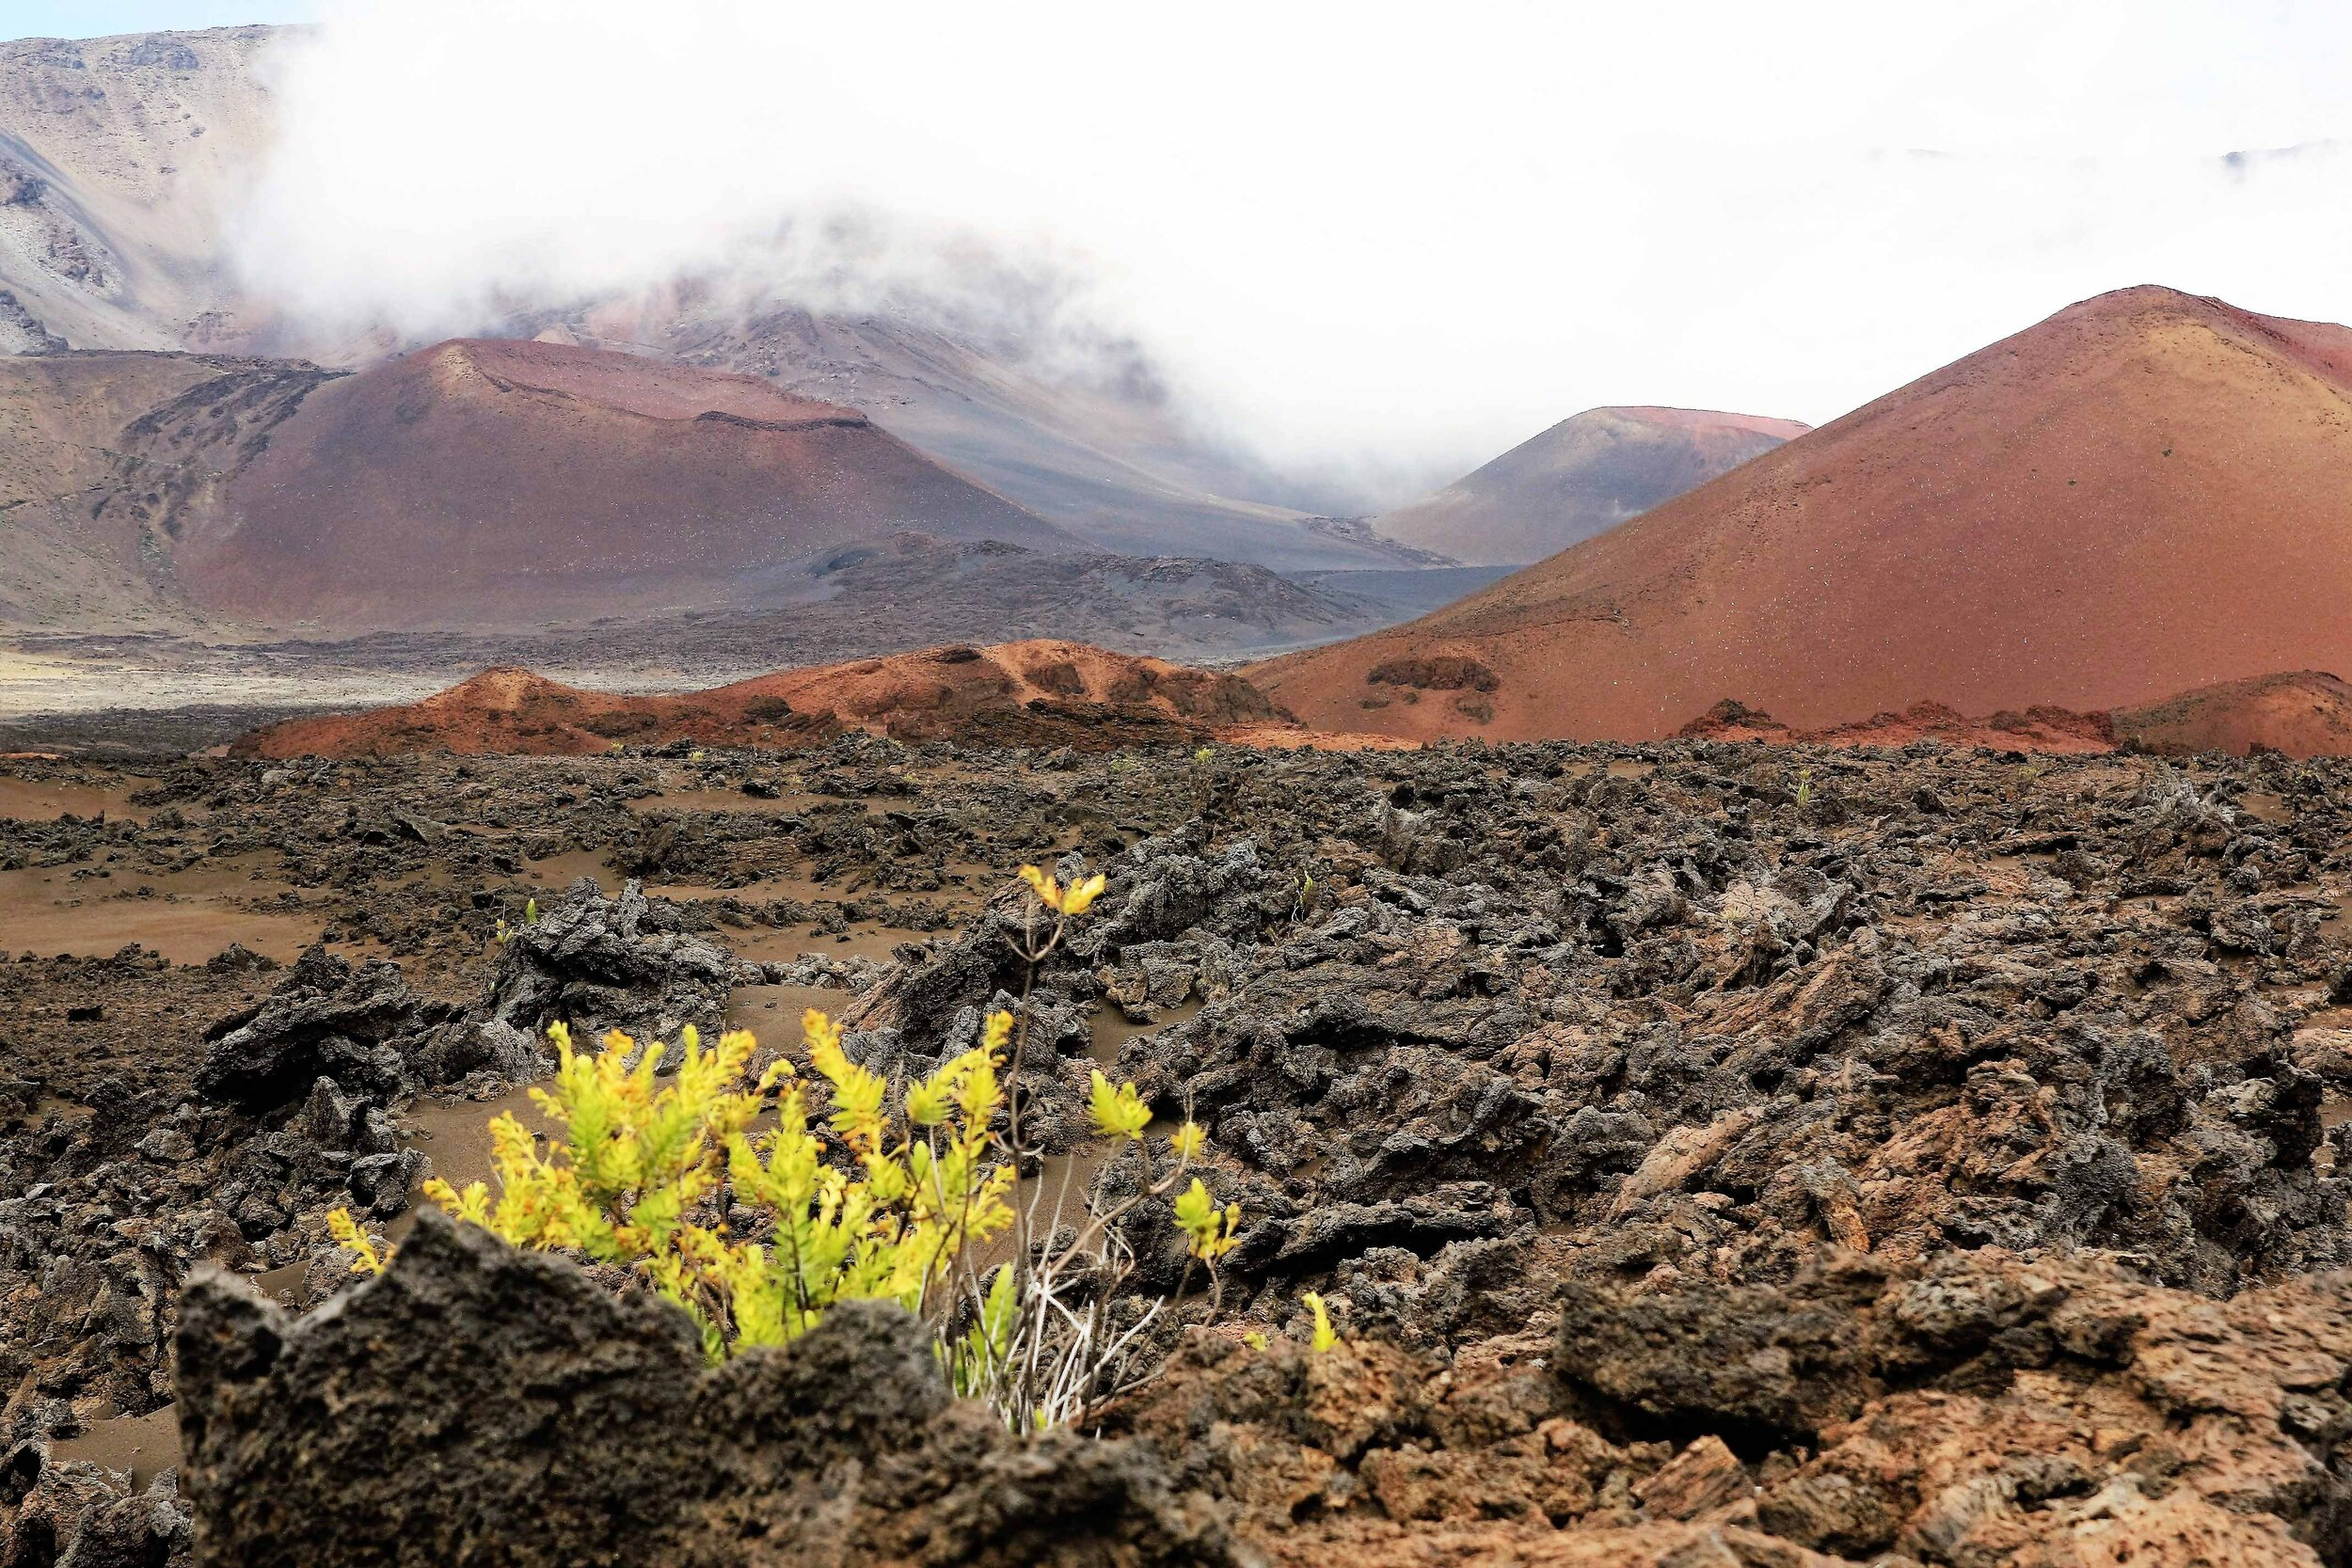 Harsh but delicate volcanic alpine landscape of Haleakala Crater, Maui.